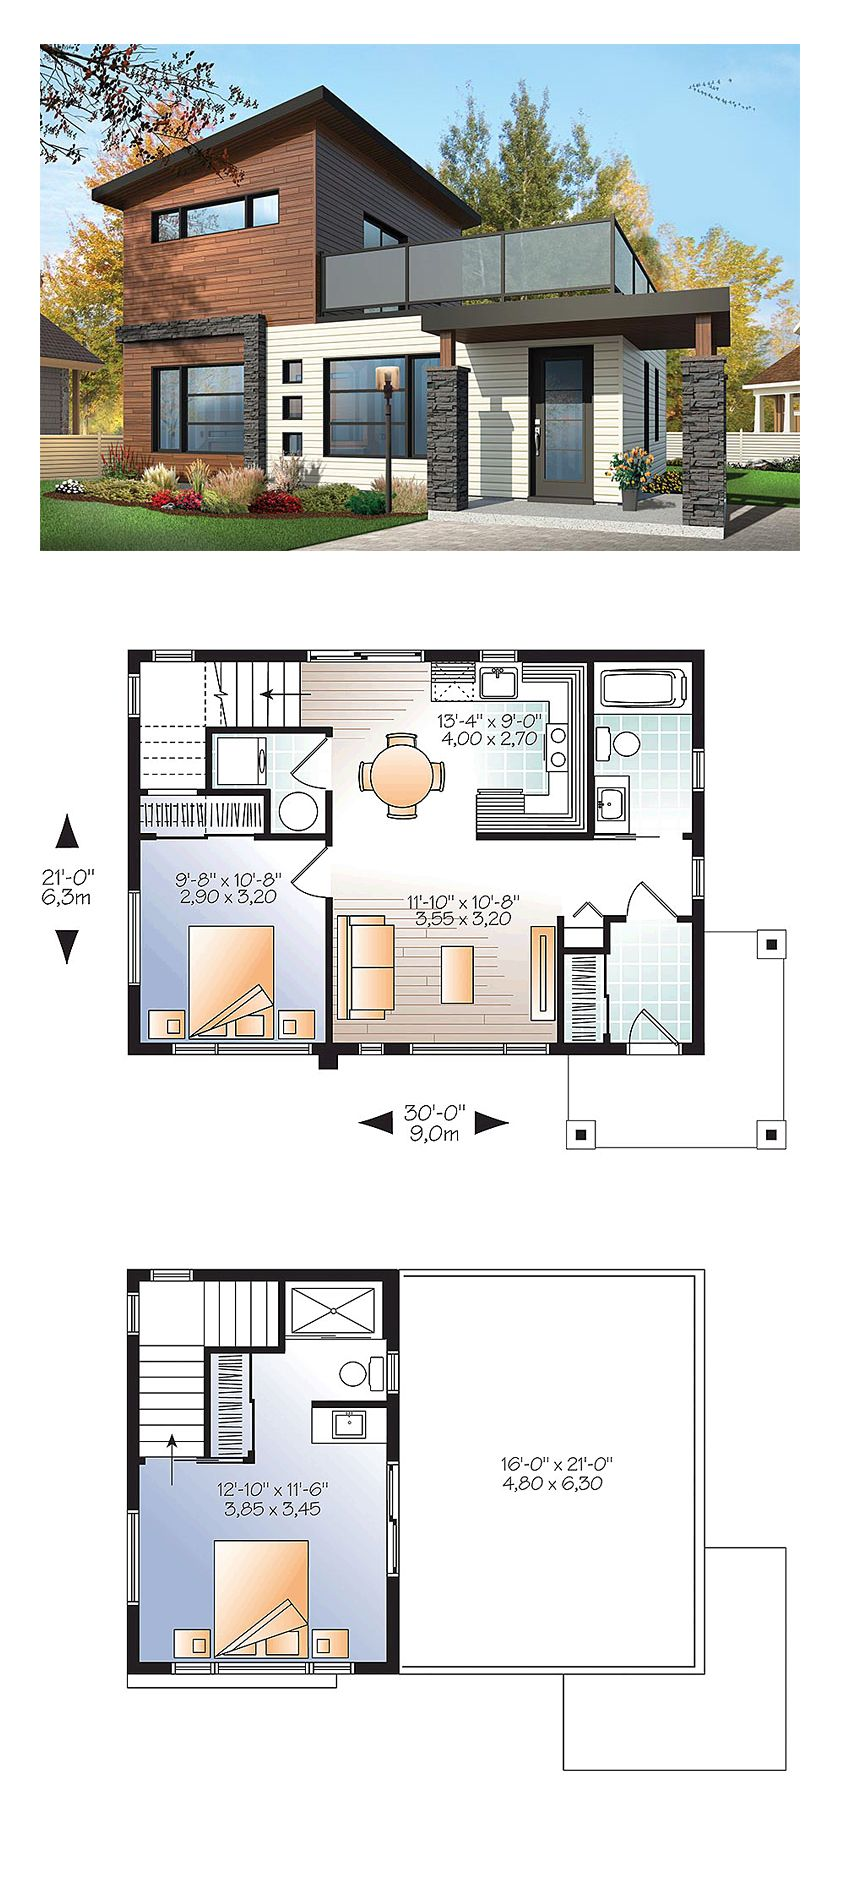 Modern House Plan 76461 | Total Living Area: 924 sq. ft., 2 bedrooms on key west home design plans, california home design plans, santa fe home design plans,